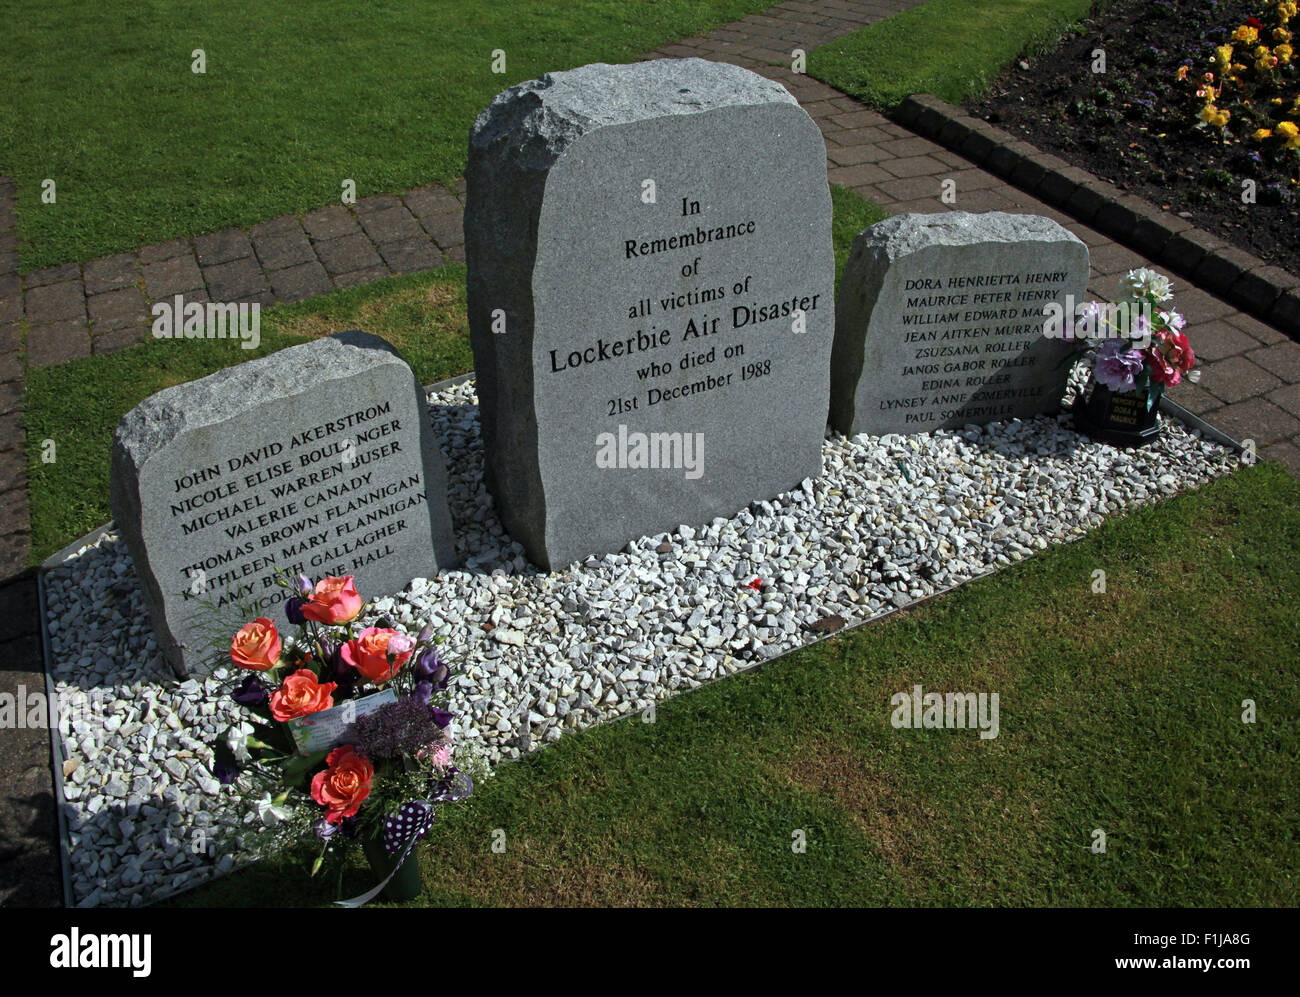 Lockerbie PanAm103 In Rememberance Memorial,Scotland - Stock Image